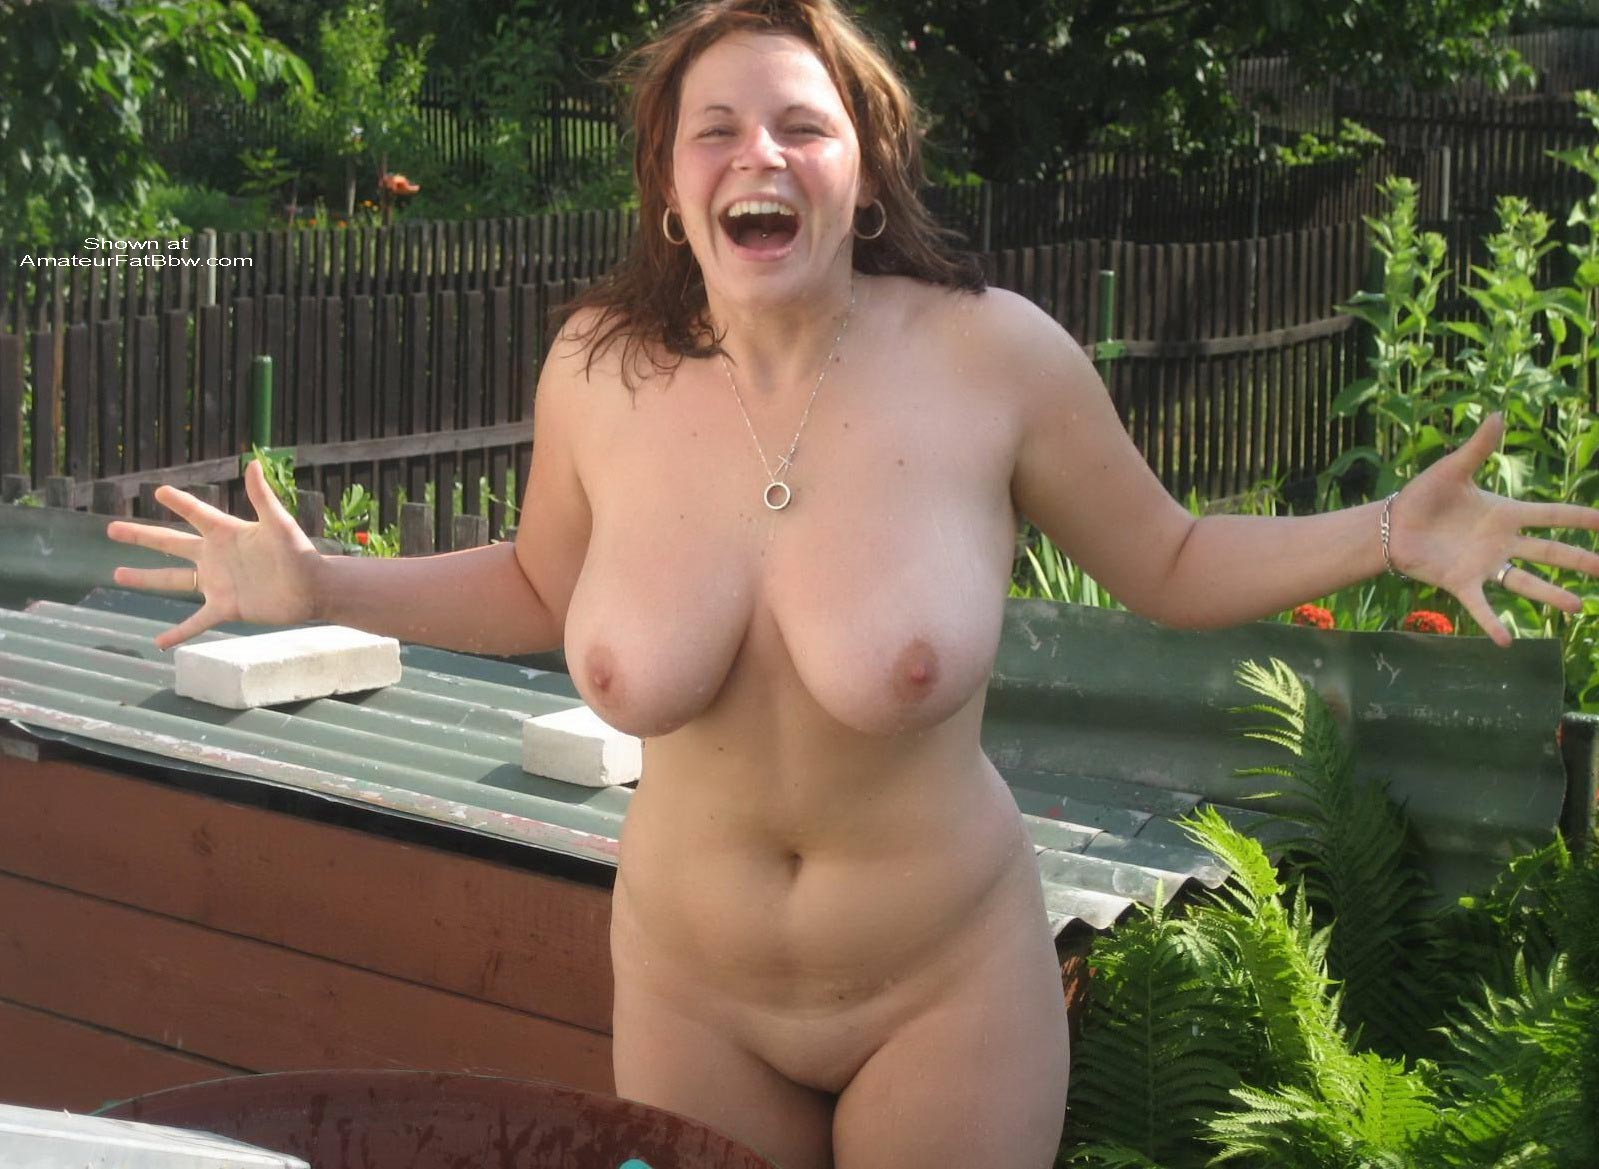 Amateur big titty videos